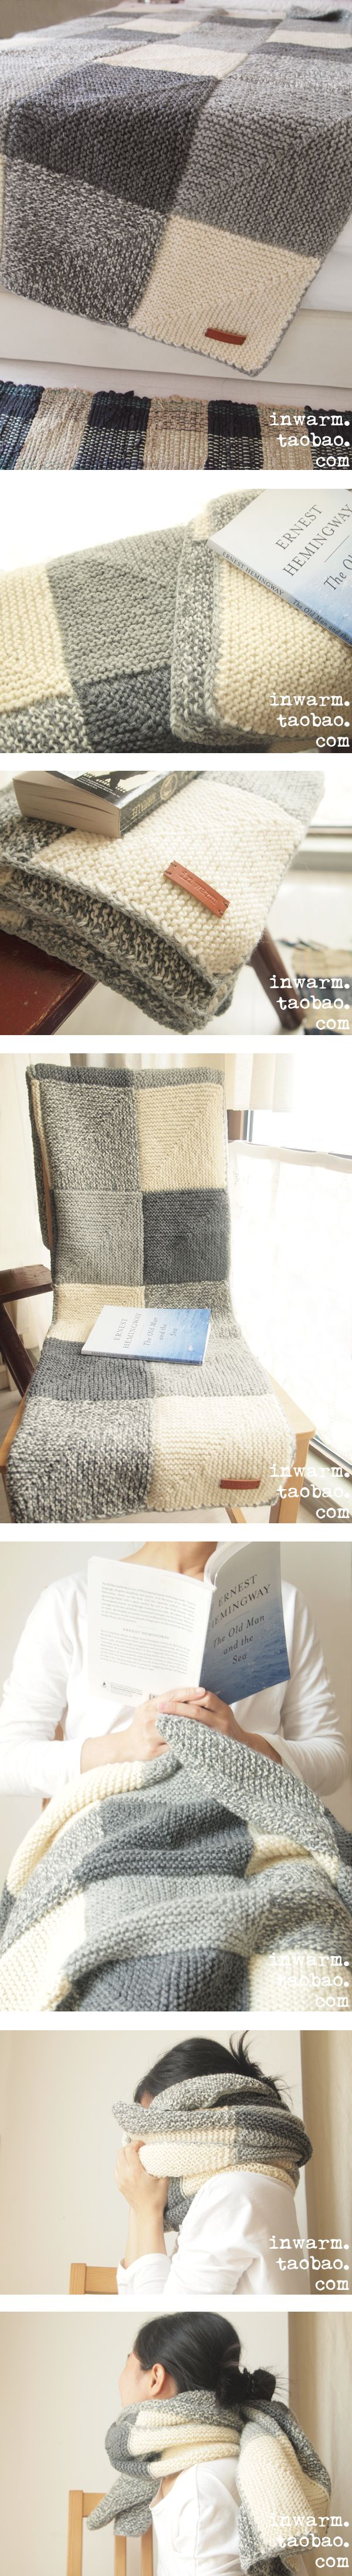 Knit blanket mitered squares